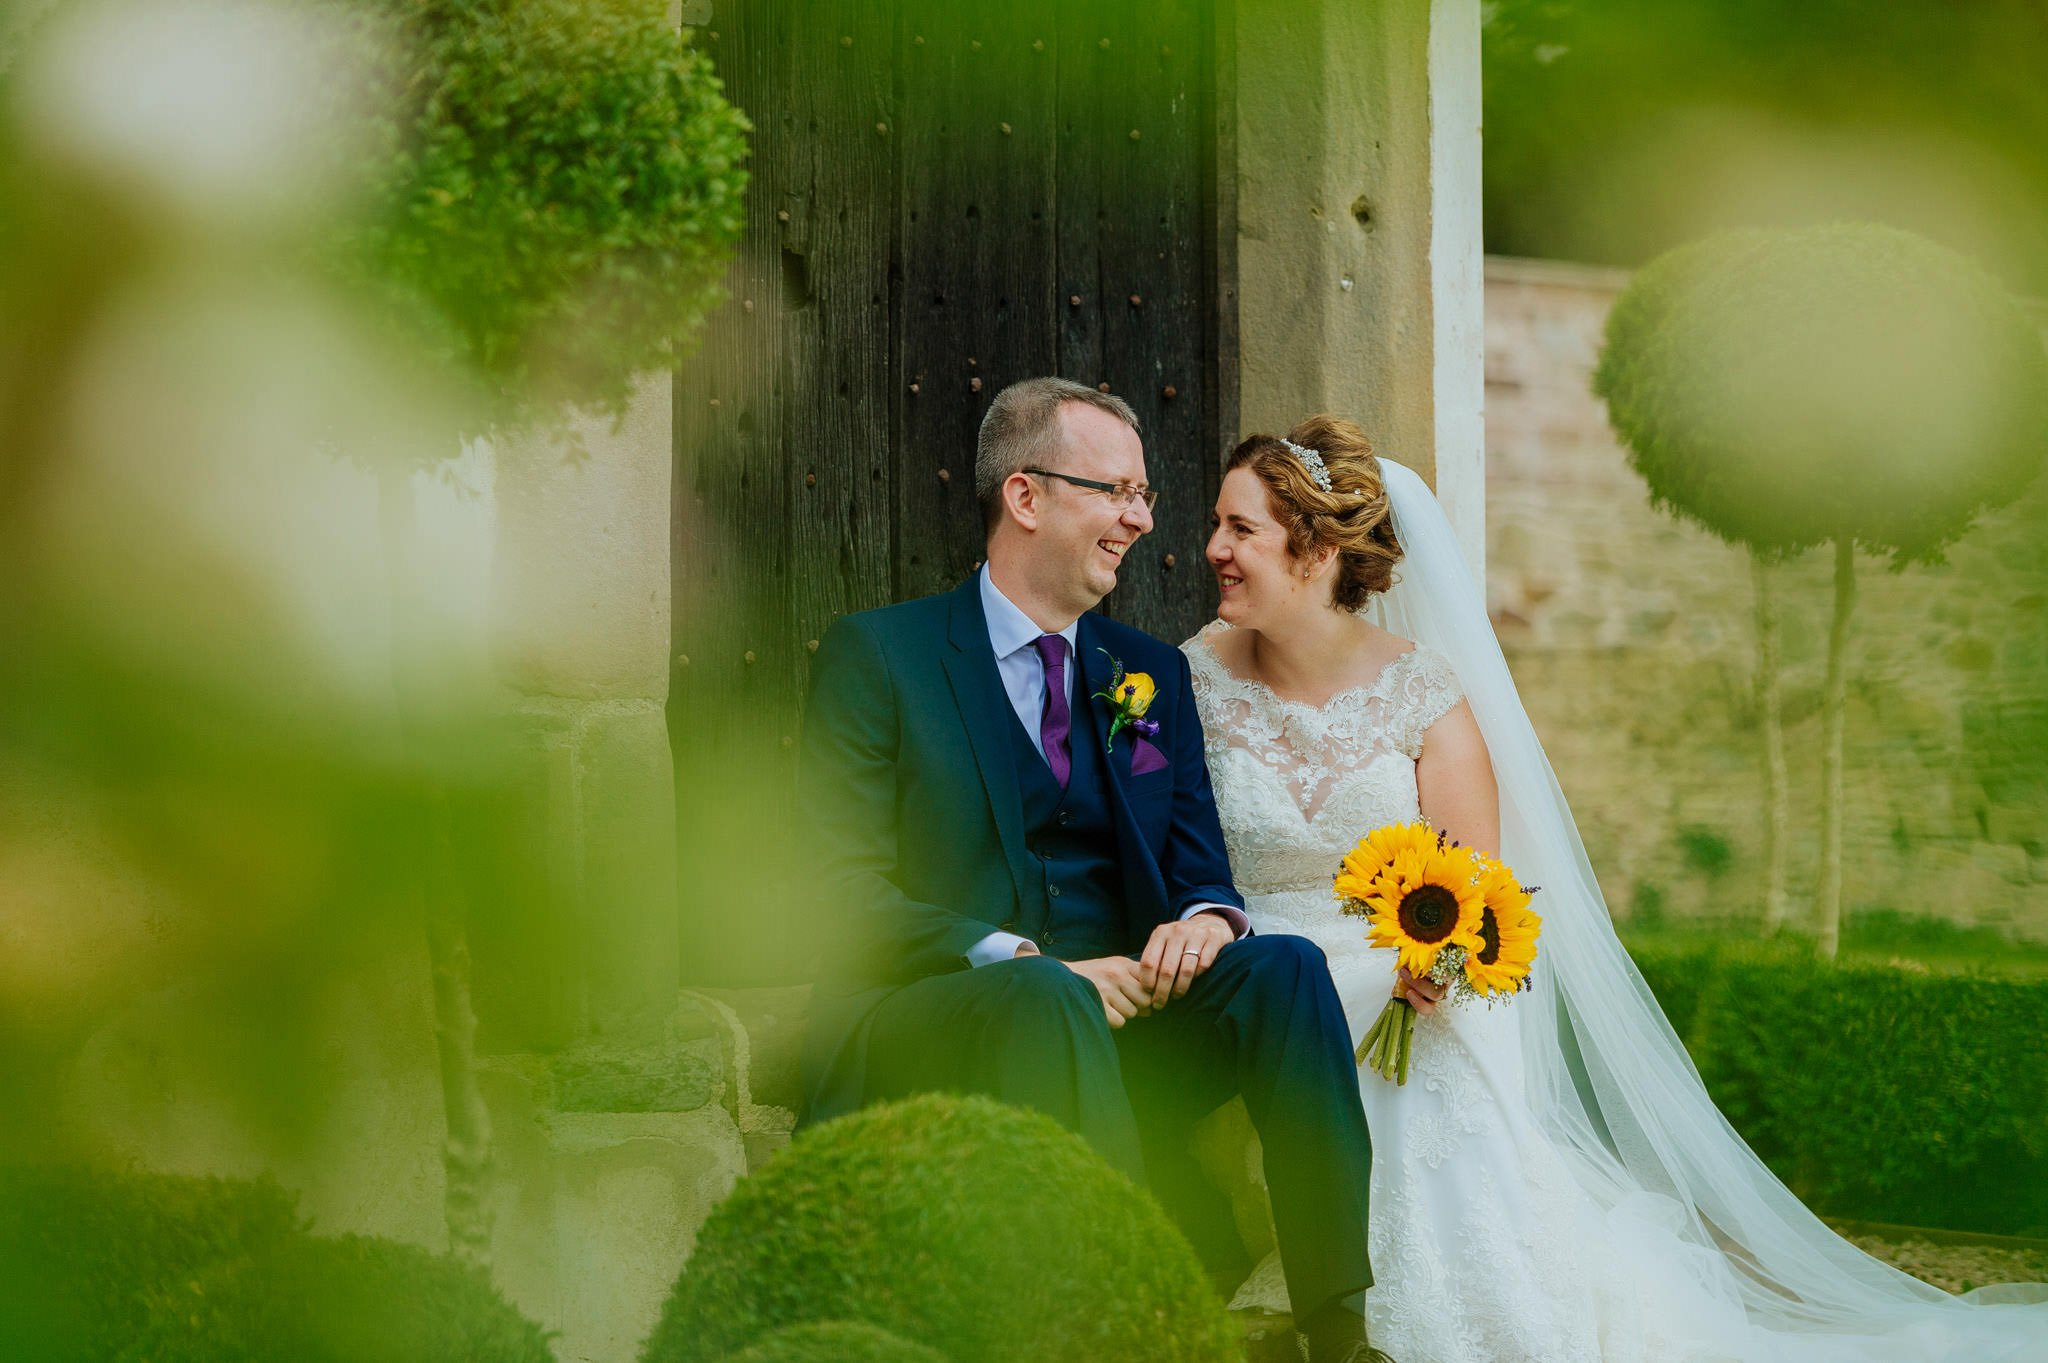 Wedding photography at Homme House in Herefordshire, West Midlands 87